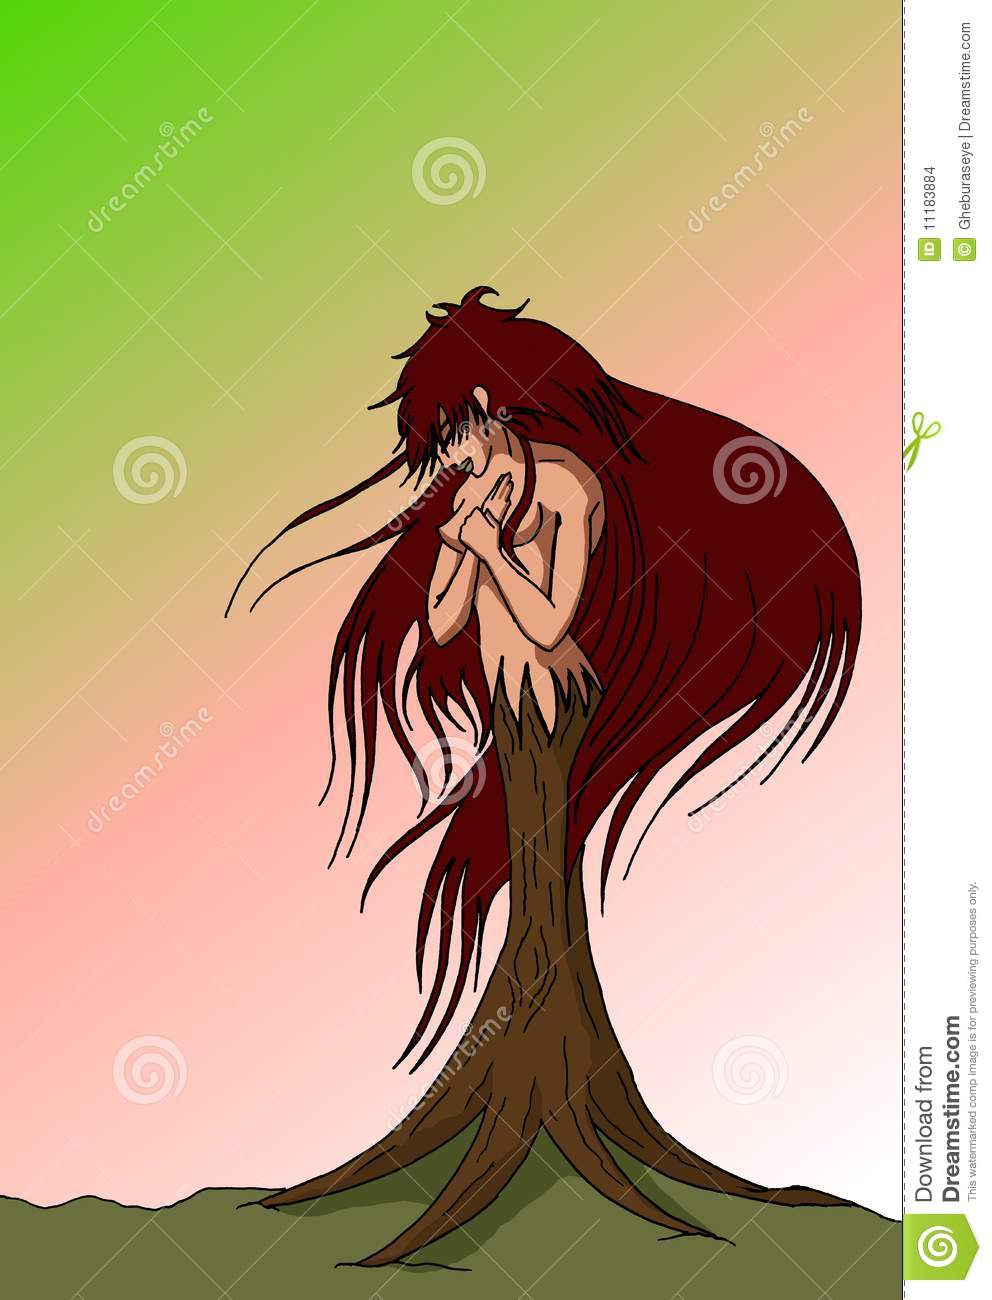 Woman Transformed Into A Tree Stock Photo - Image: 11183884